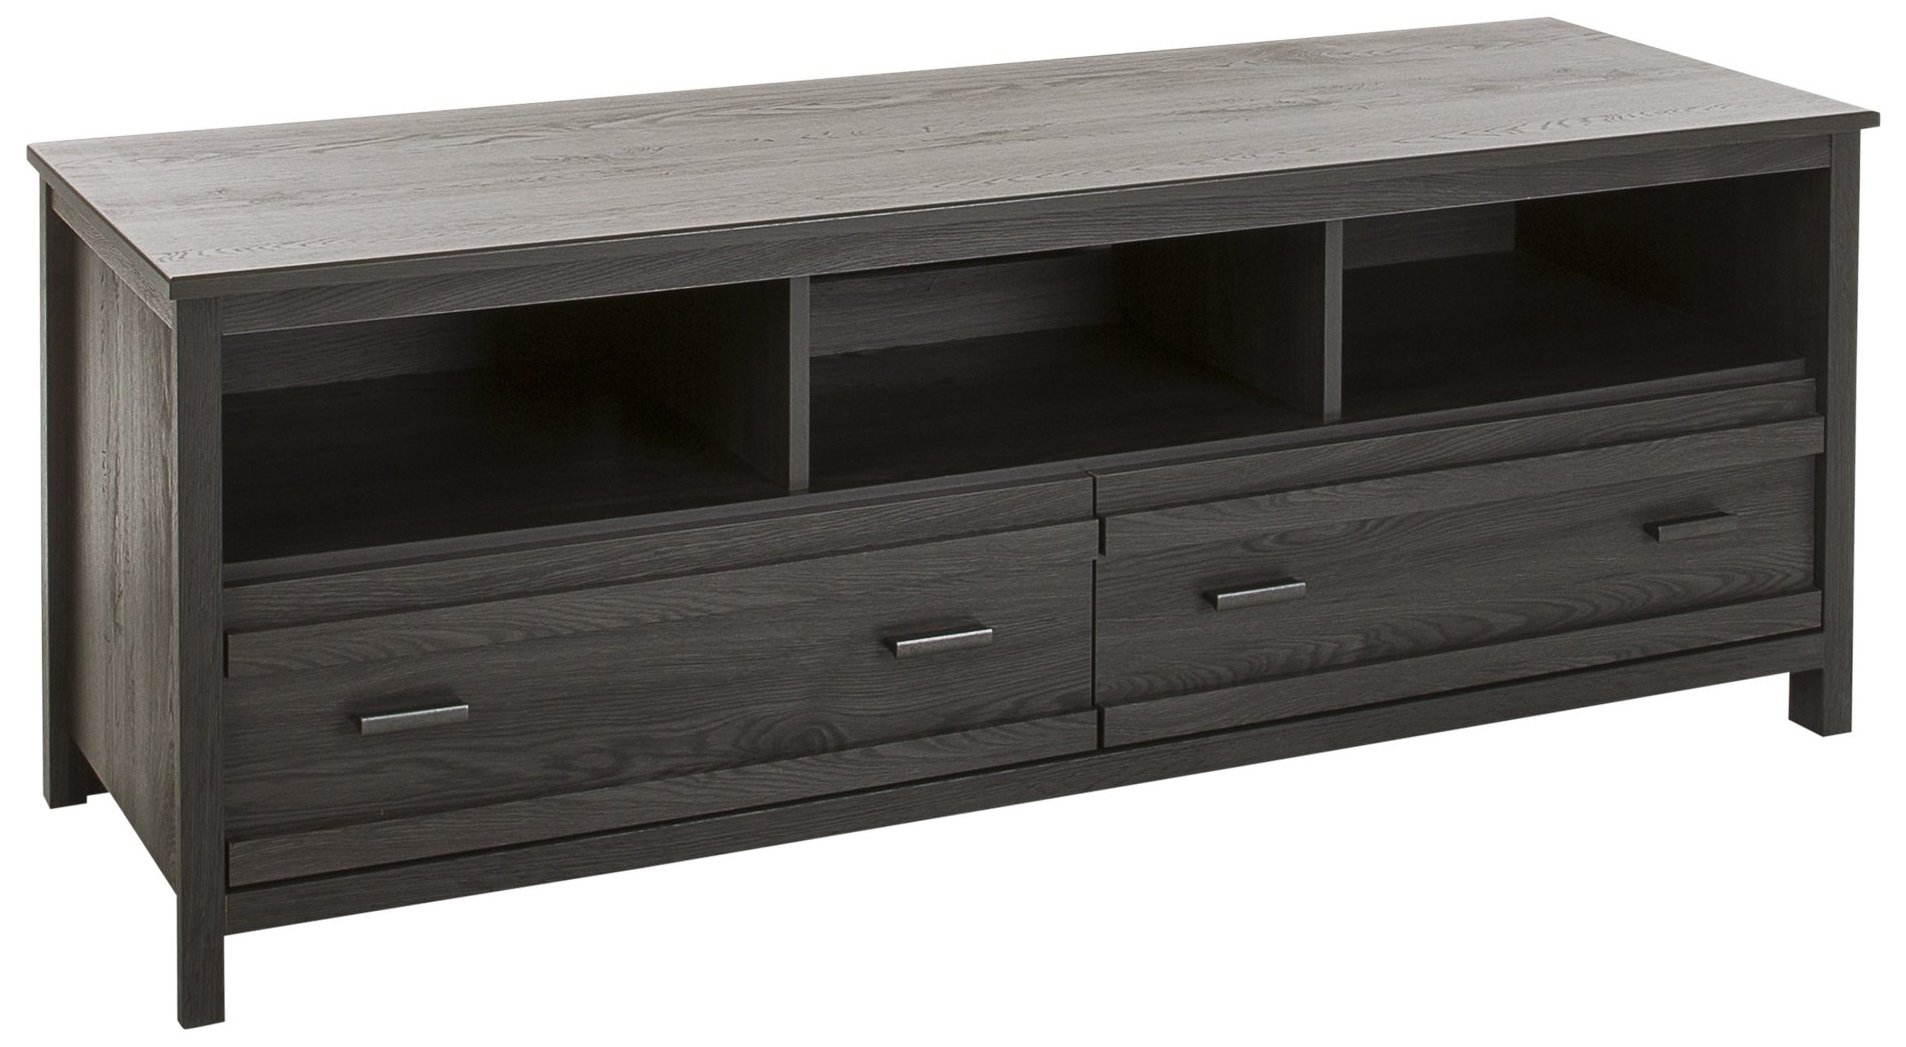 South Shore Exhibit TV Stand for TVs, Up to 60'', Gray Oak by South Shore